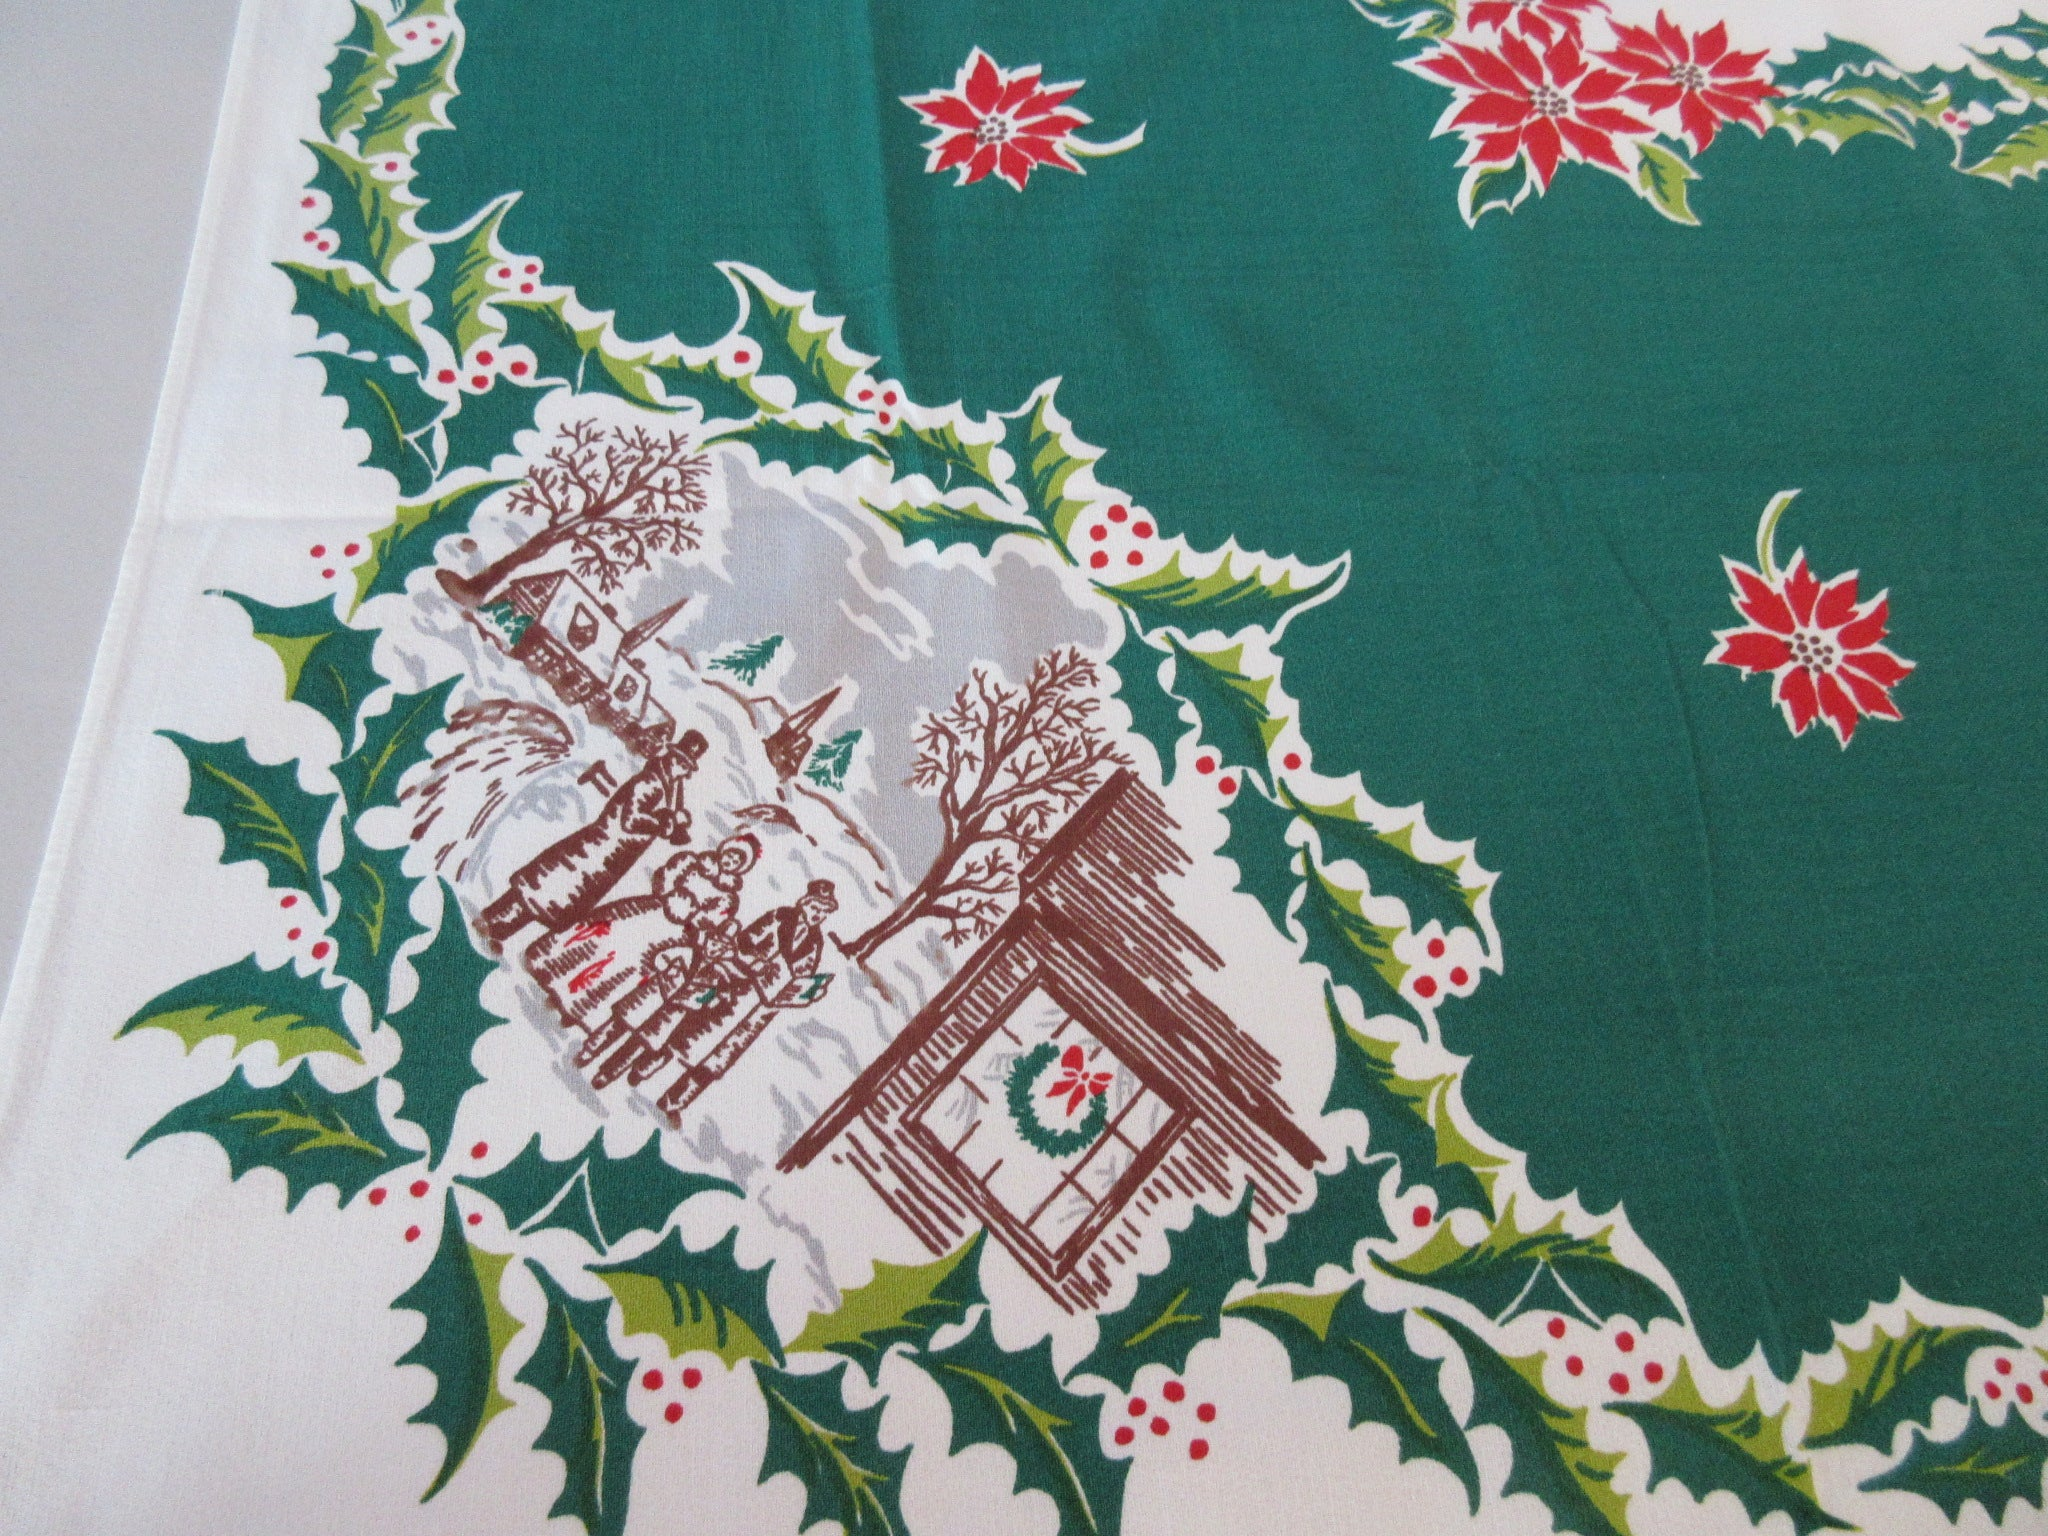 Victorian Vignettes Poinsettias on Green Christmas Vintage Printed Tablecloth (63 X 50)